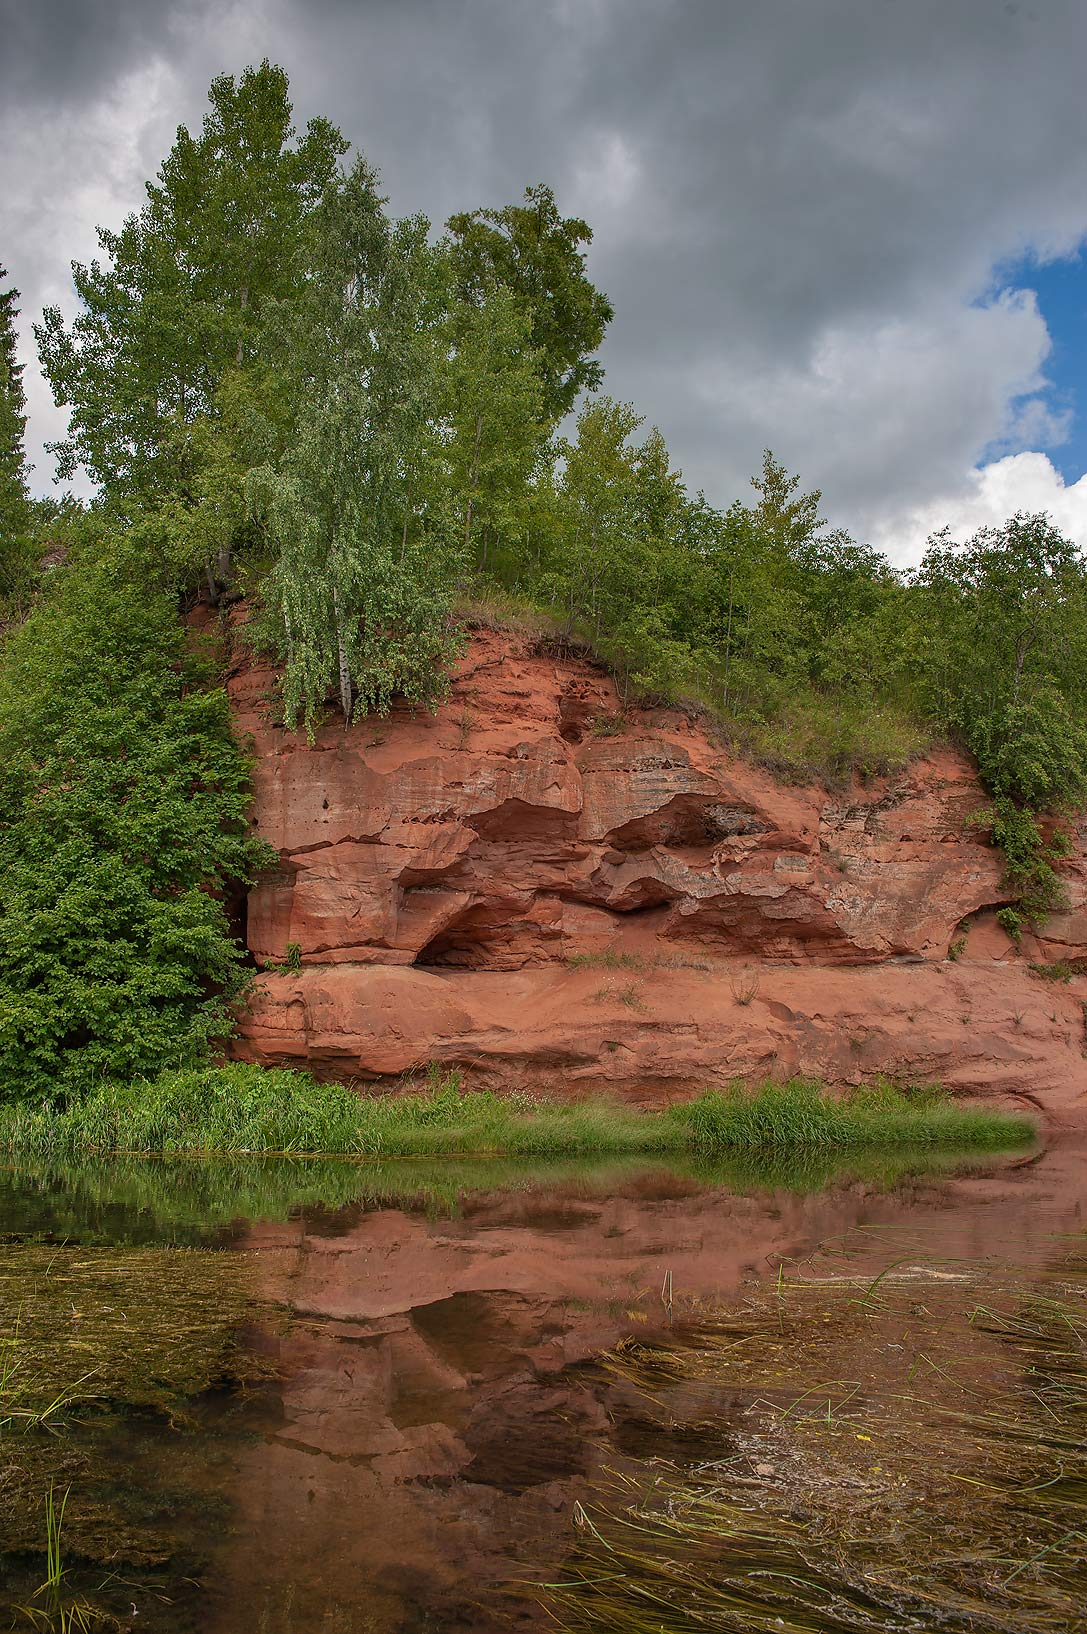 Red sandstone cliff near Oredezh River. Siverskaya south from St.Petersburg, Russia